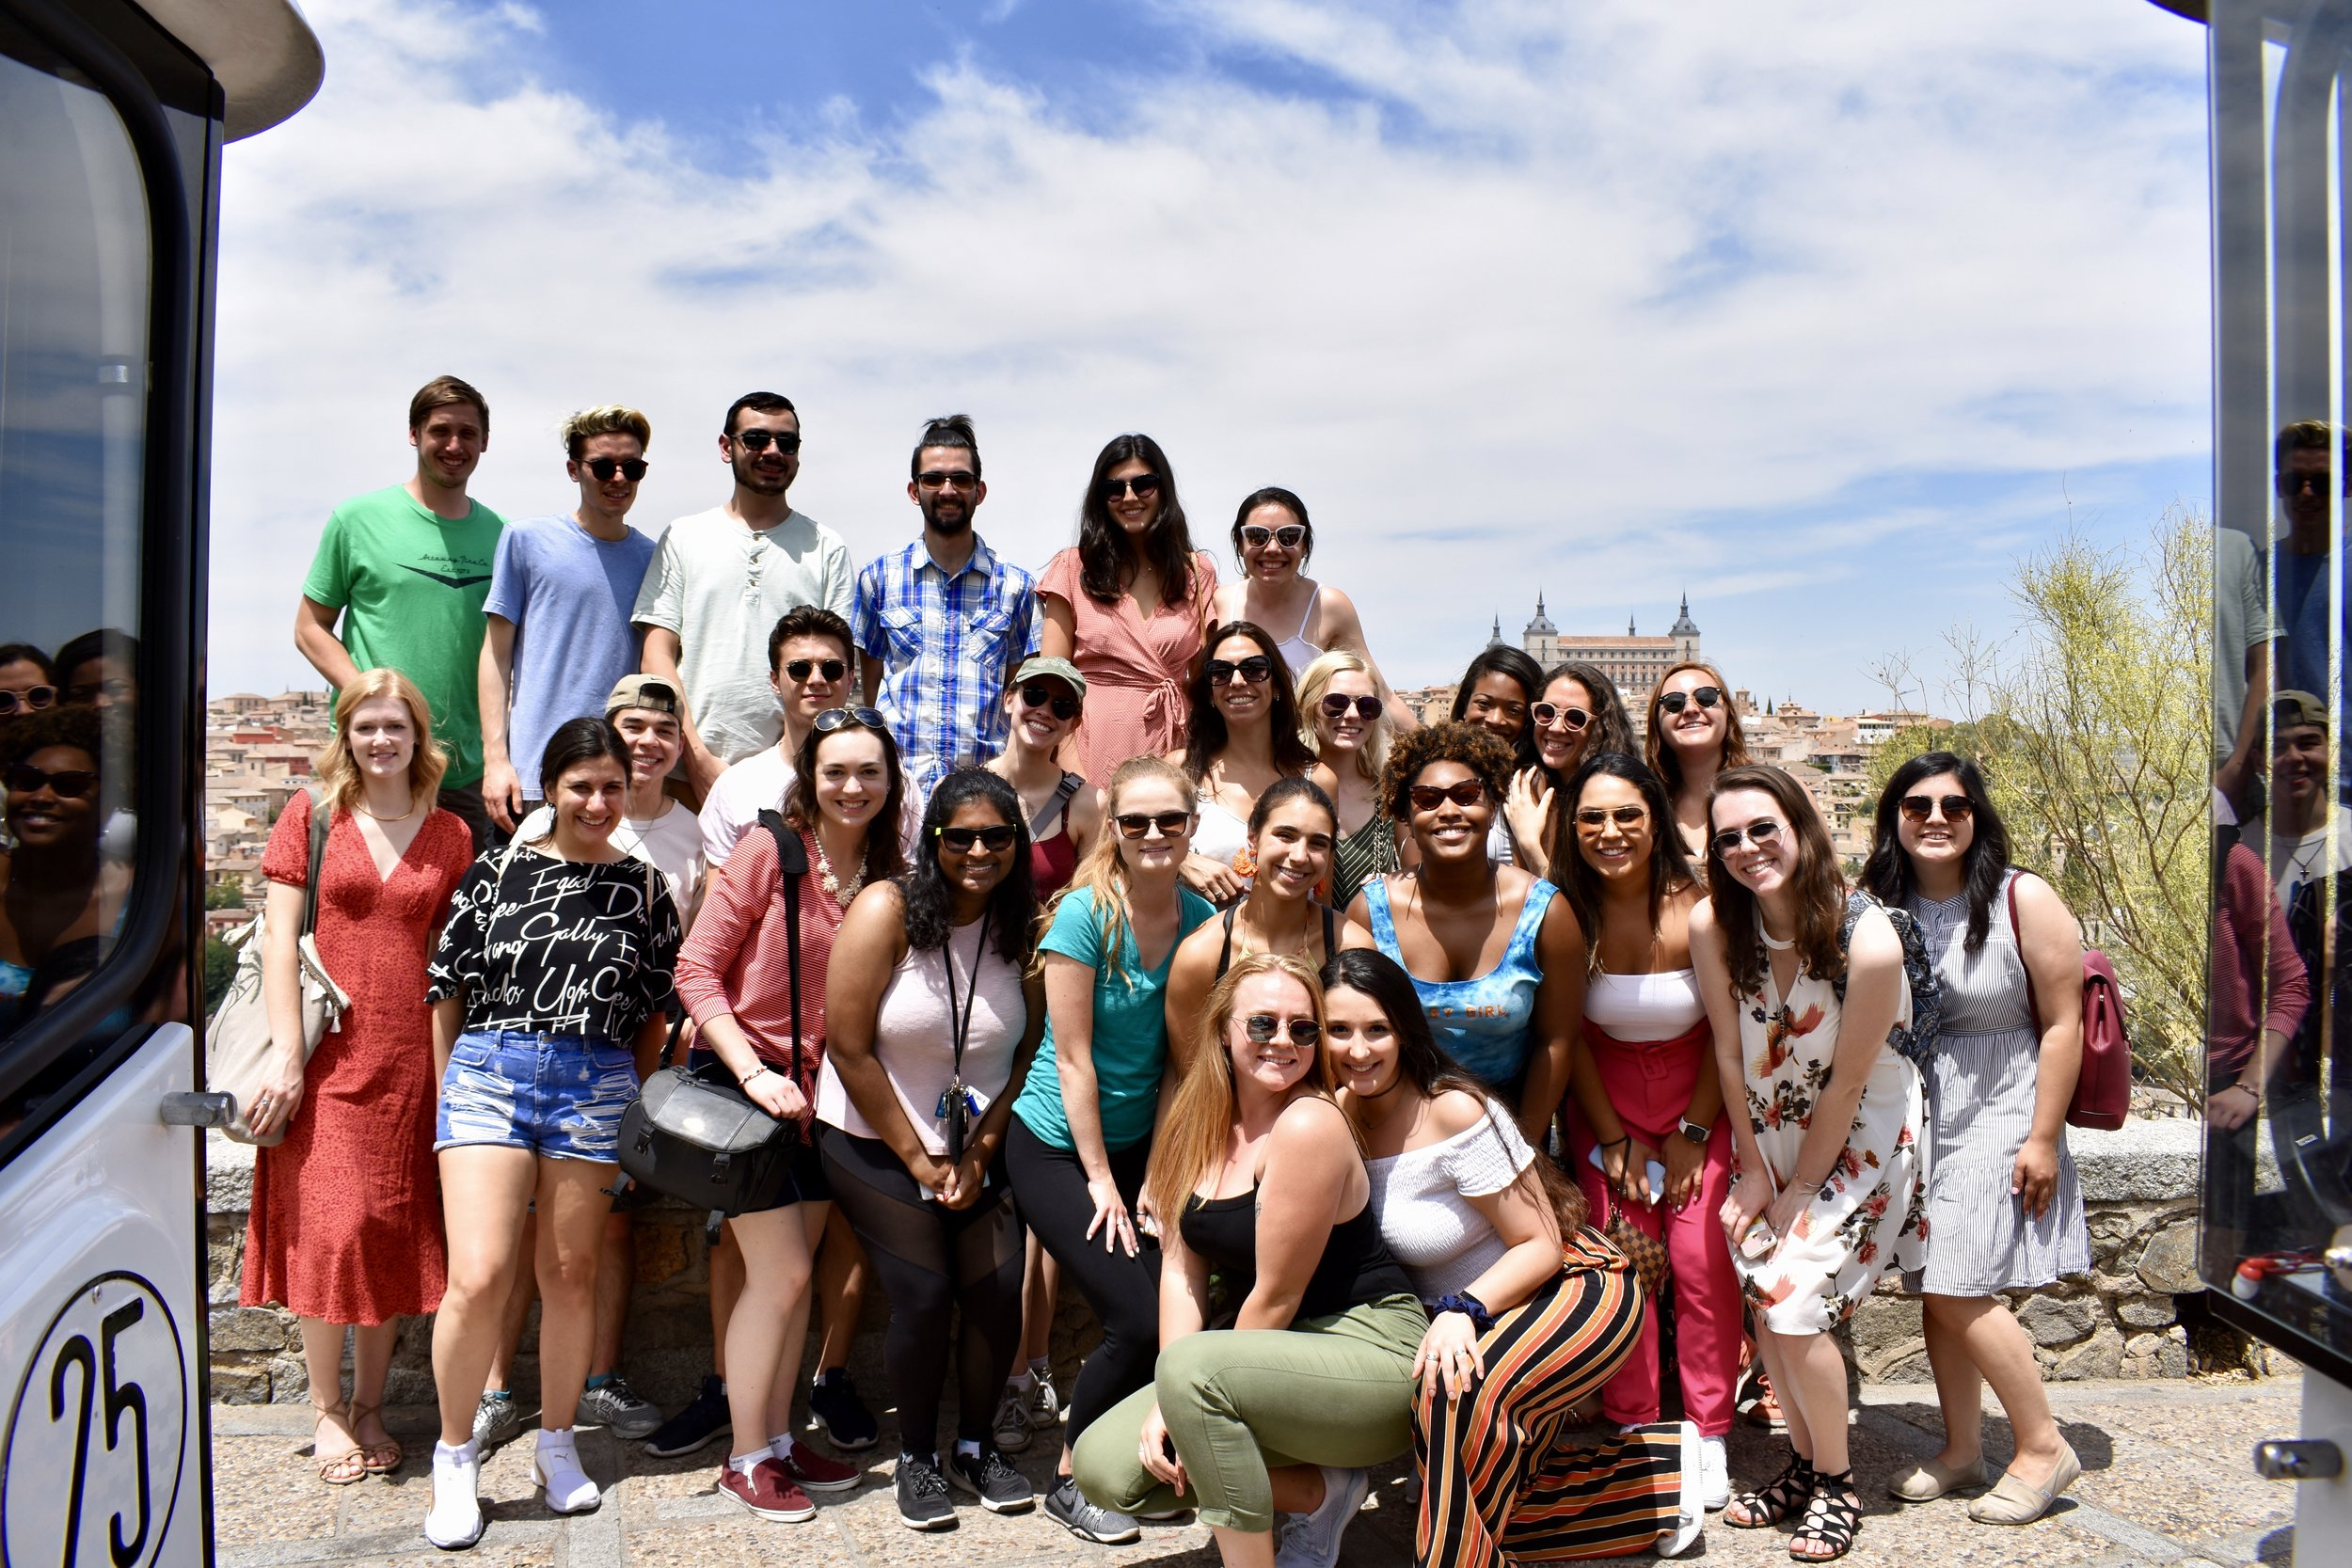 On a weekend excursion from Madrid, Fellows pose withe the casco of Toledo in the background, July 2019.